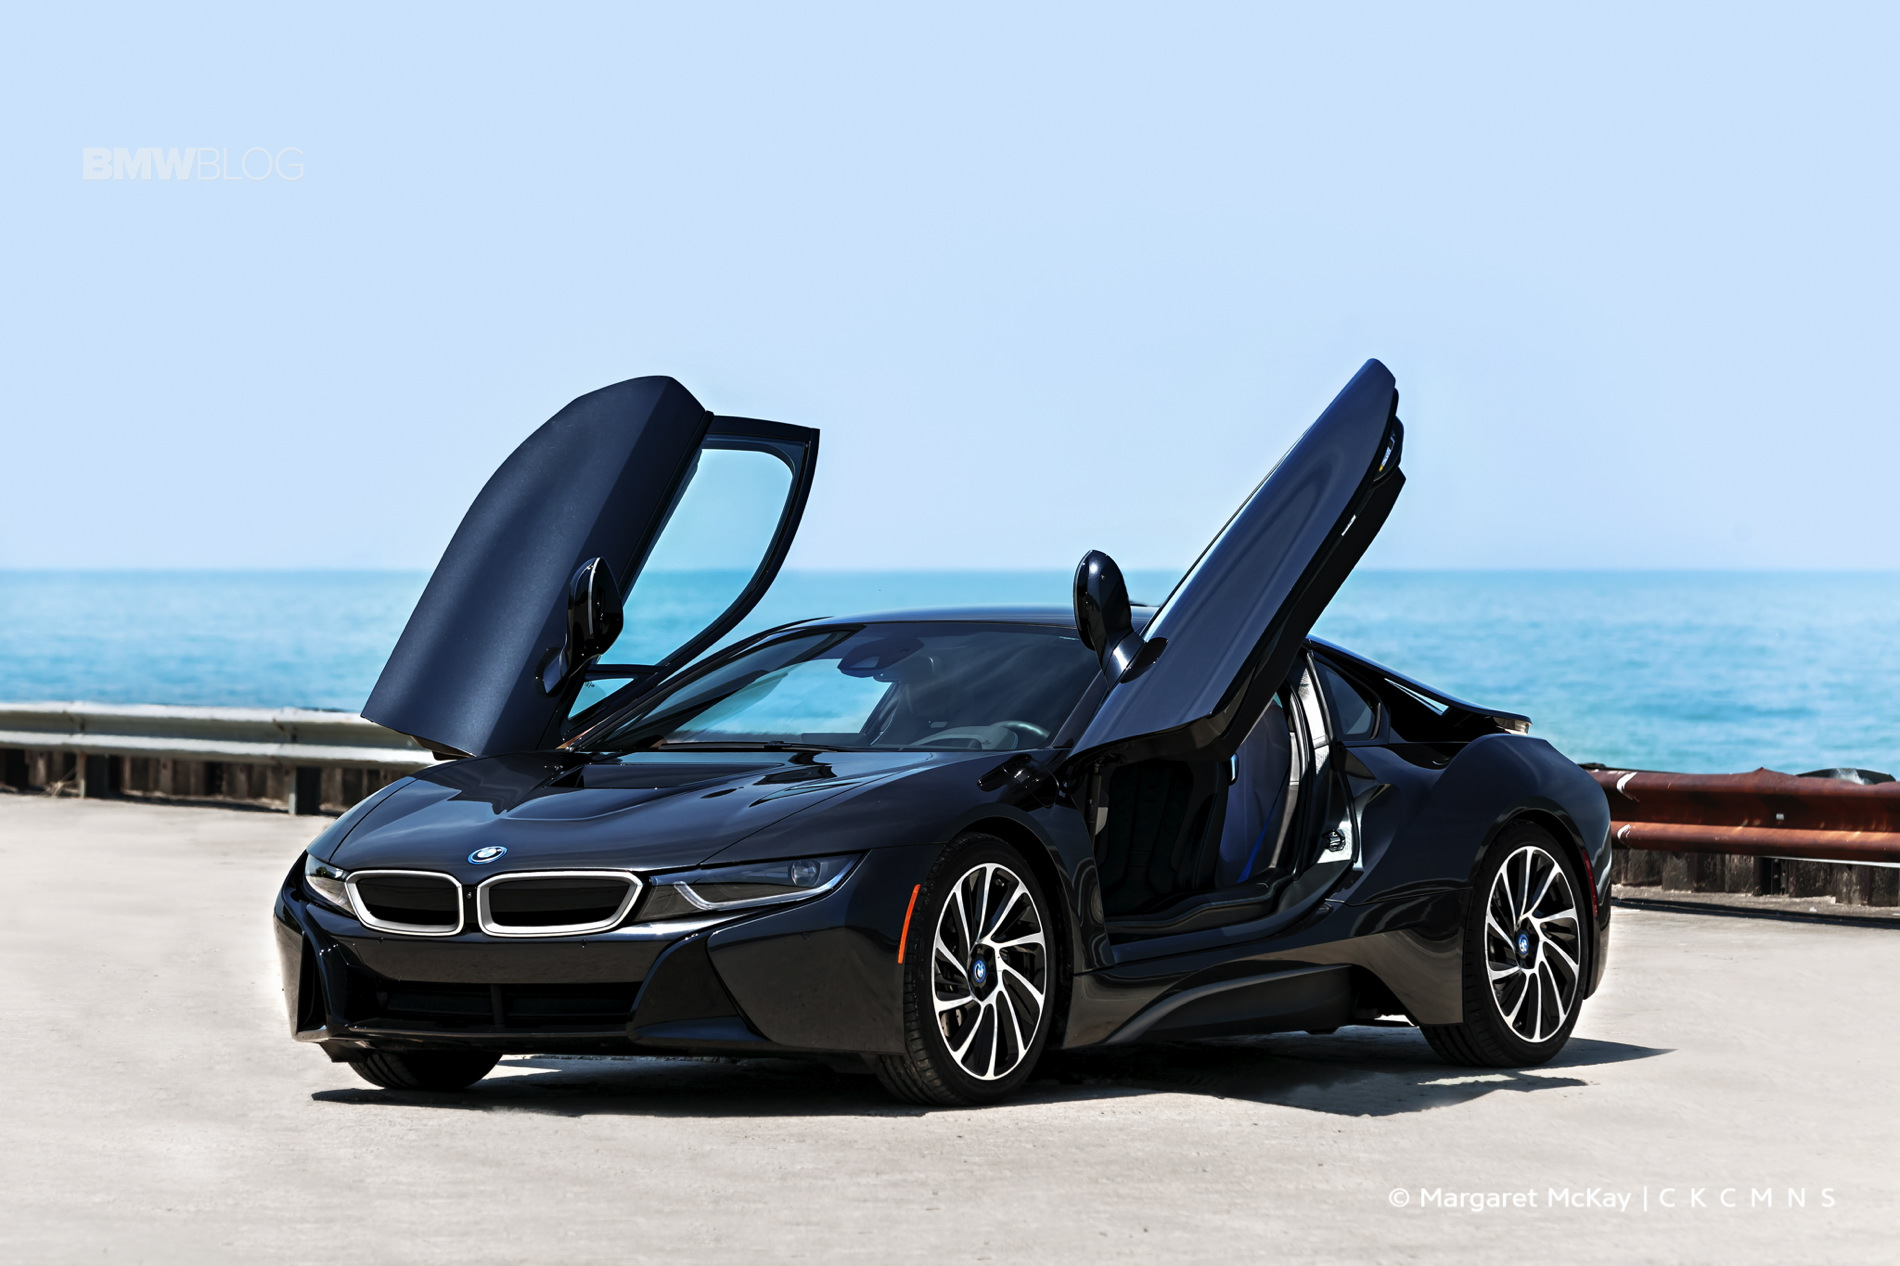 Sports Cars Luxury >> 2015 BMW i8 - ROAD TEST